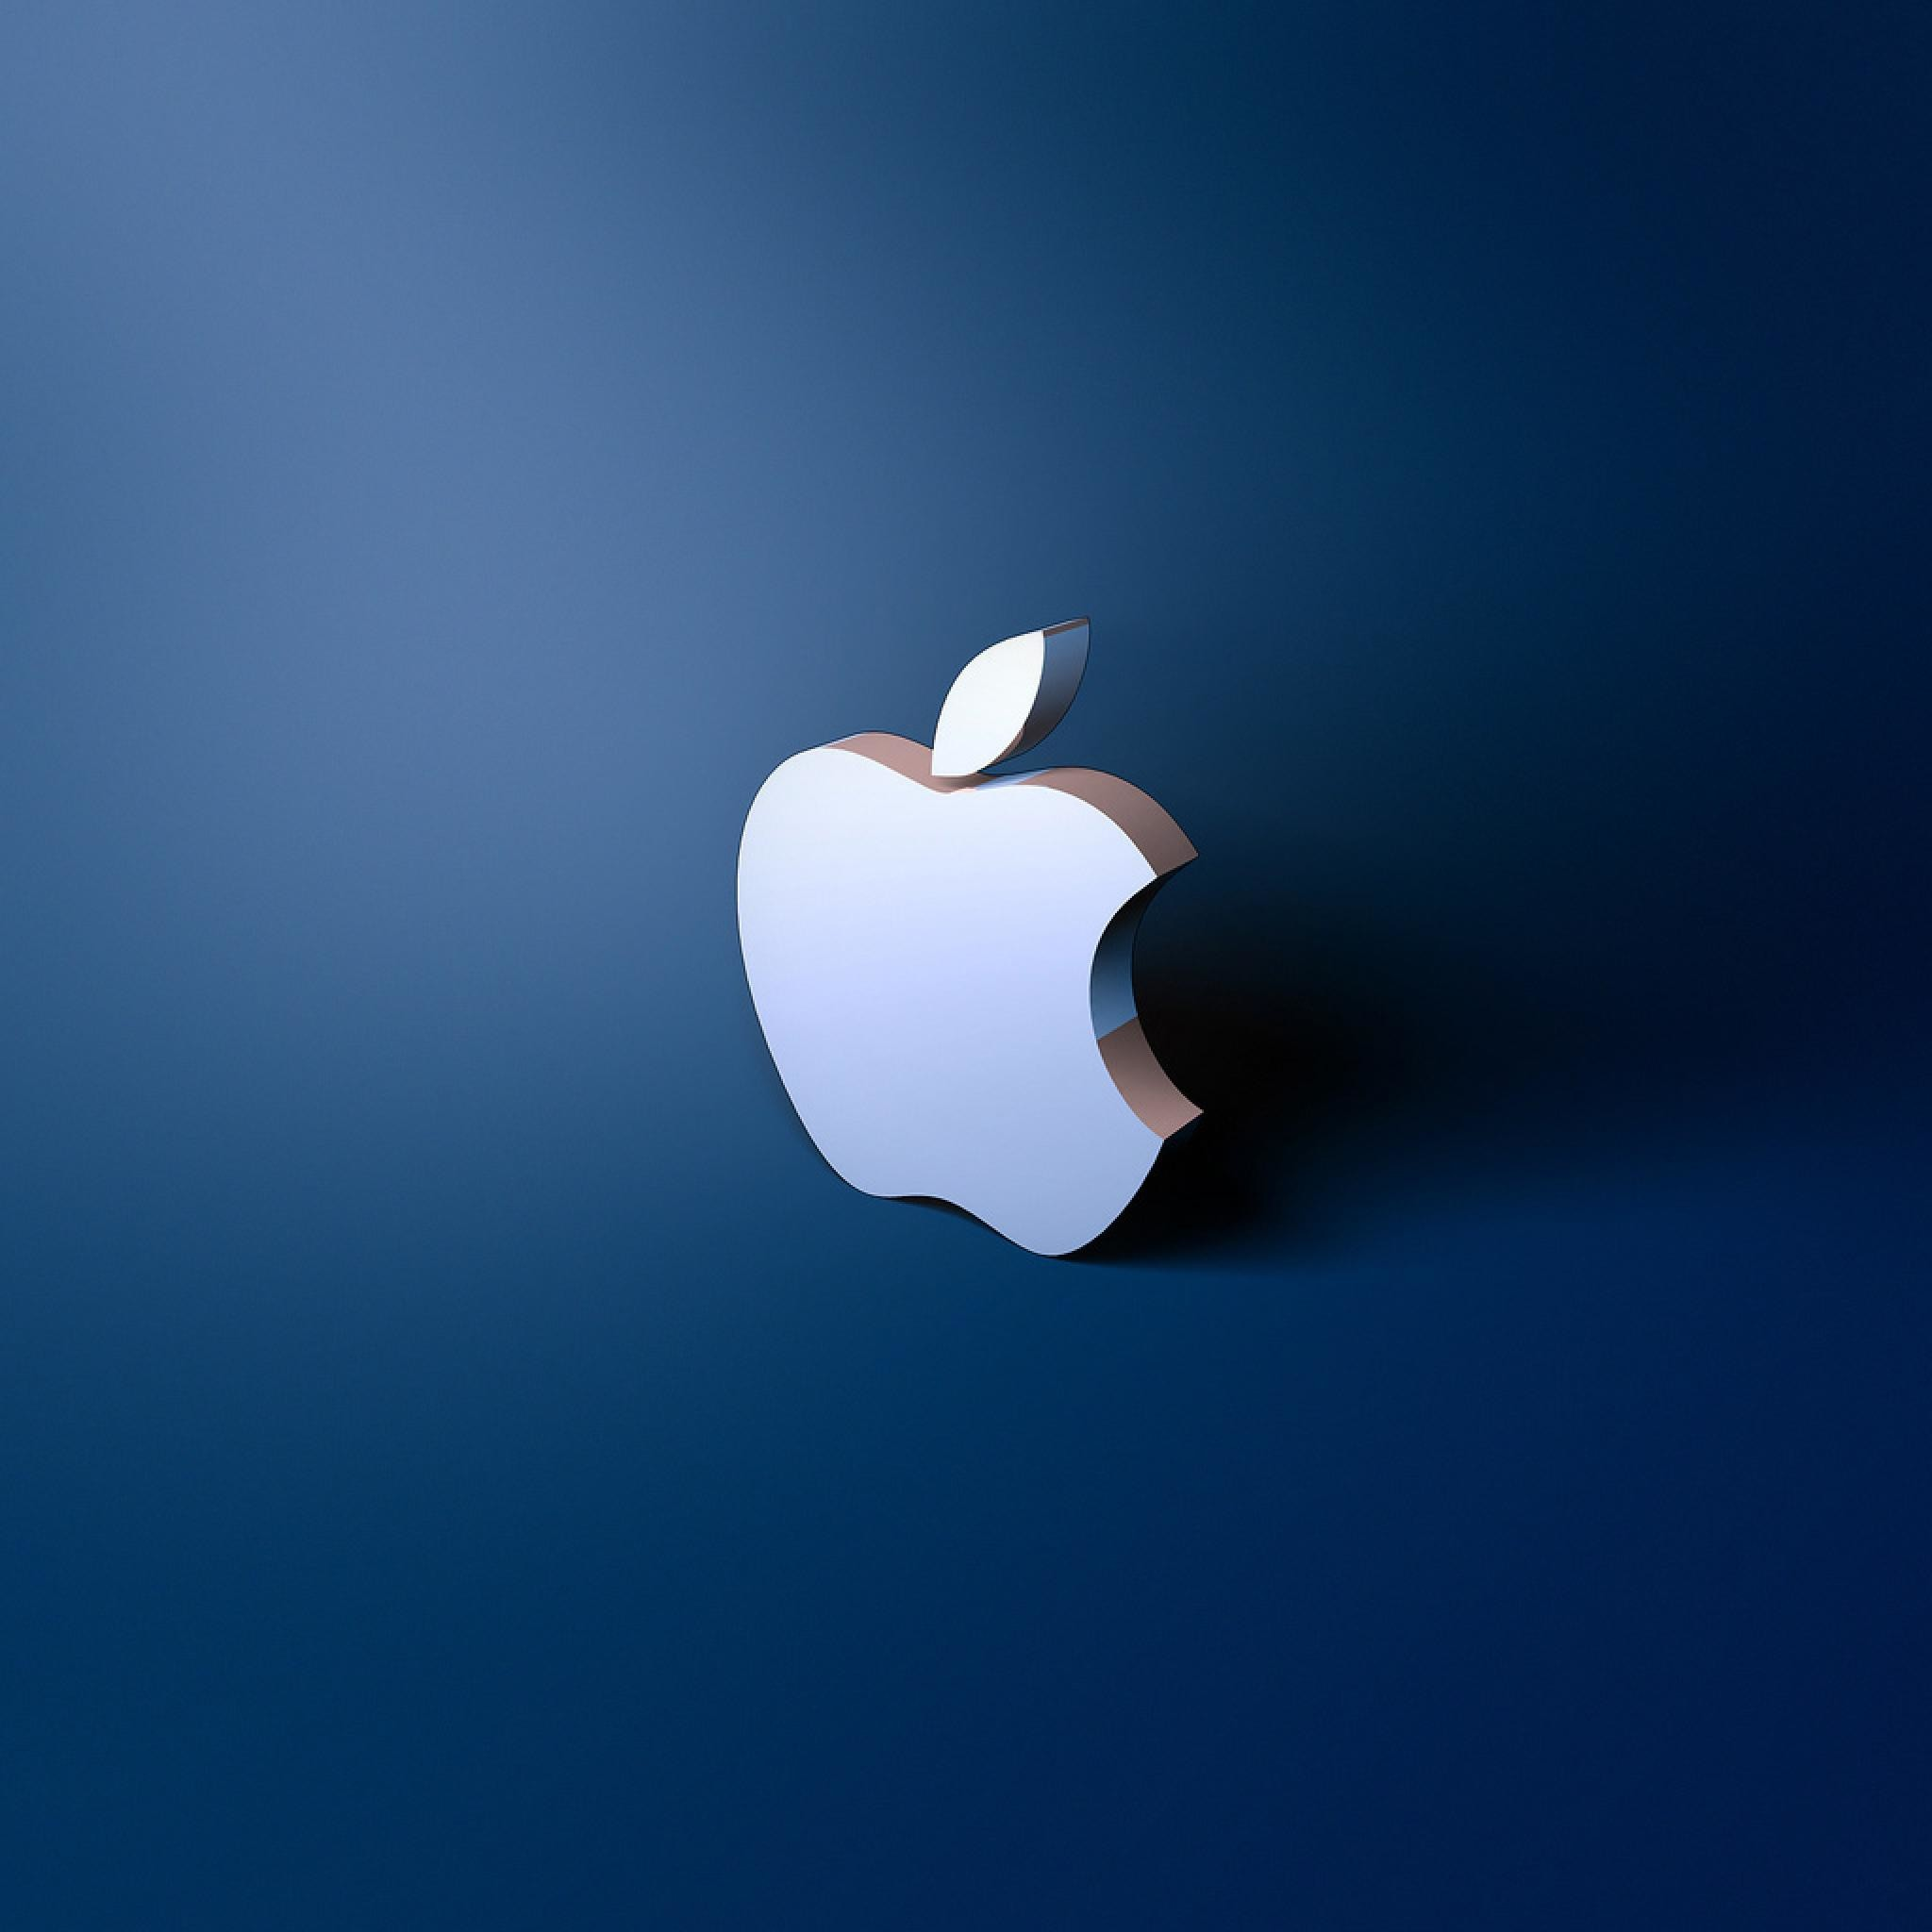 2048x2048 Light Blue Apple Logo.png - Bing images